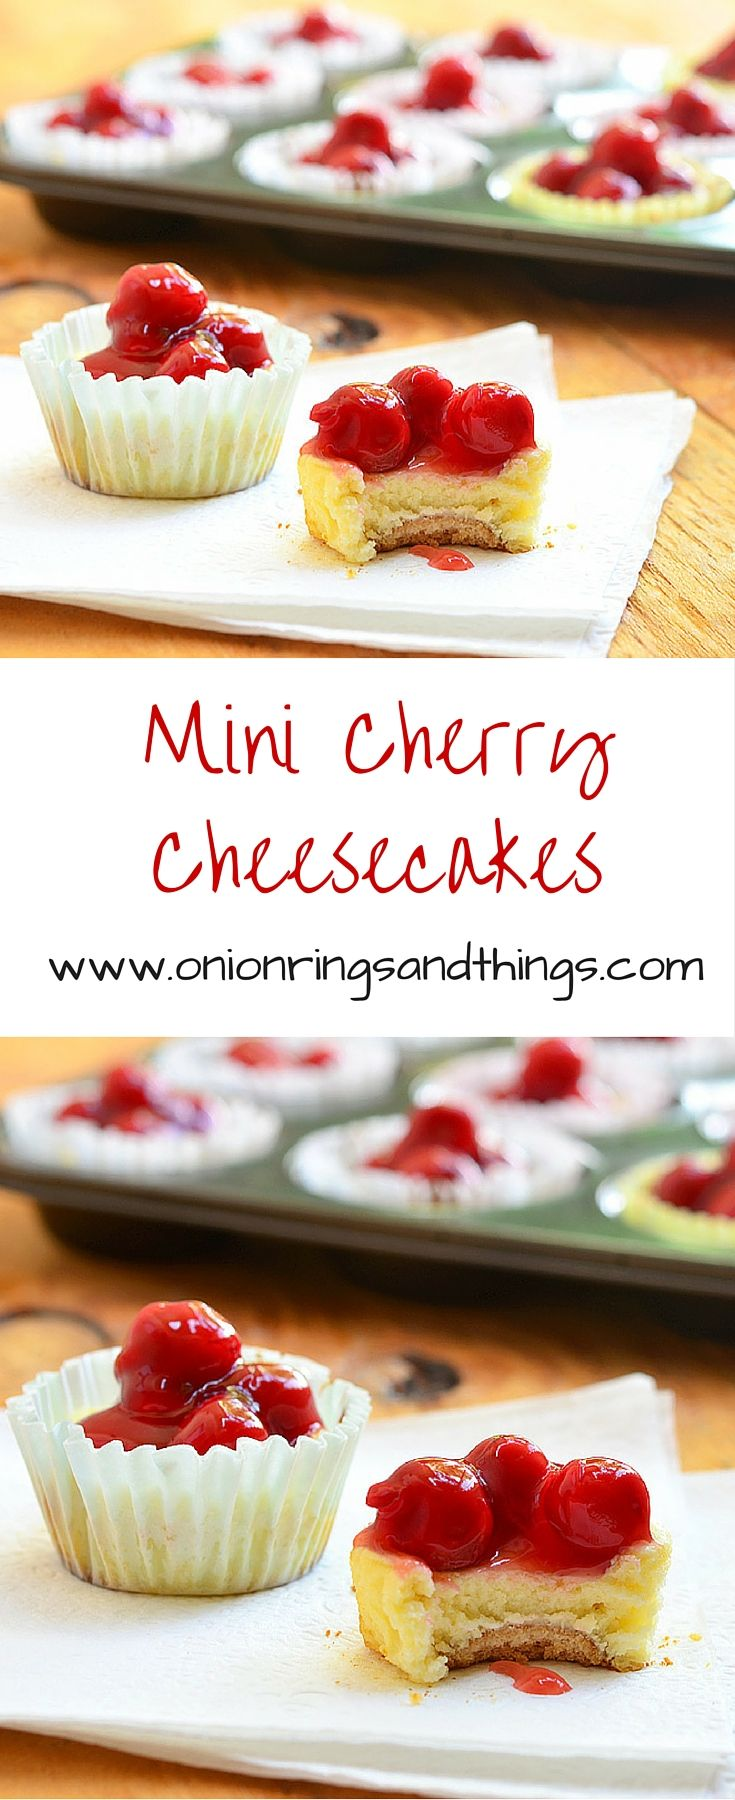 25+ best ideas about Mini cherry cheesecakes on Pinterest ...